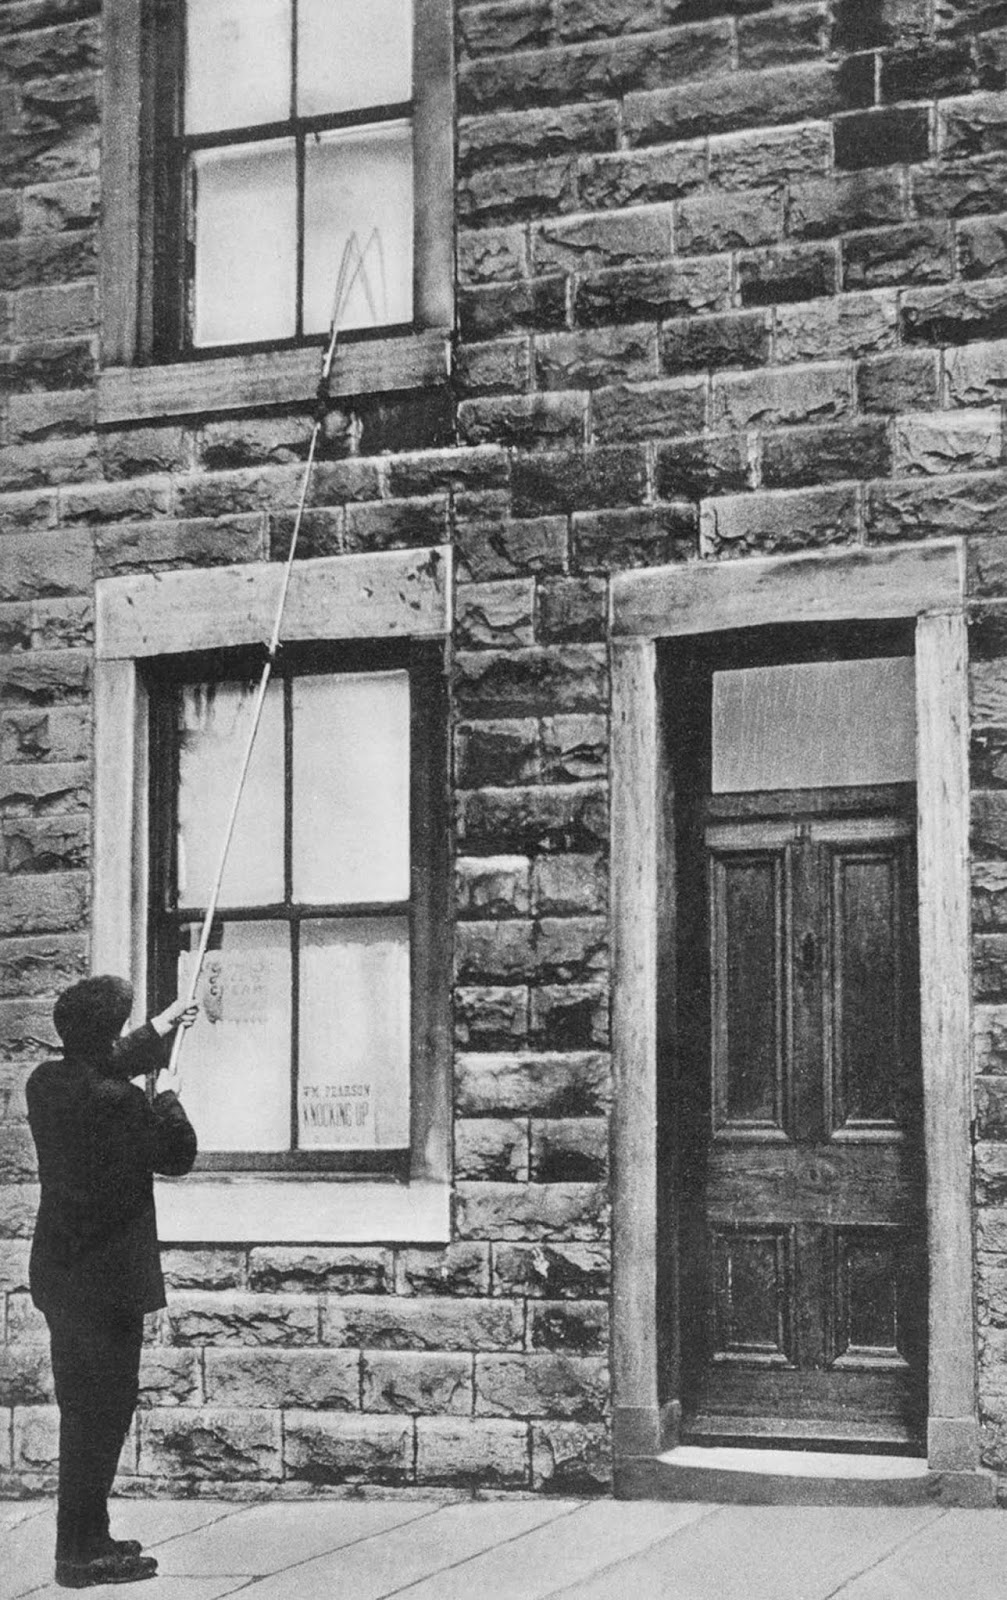 While the standard implement was a long fishing rod-like stick, other methods were employed, such as soft hammers, rattles and even pea shooters. c. 1915.